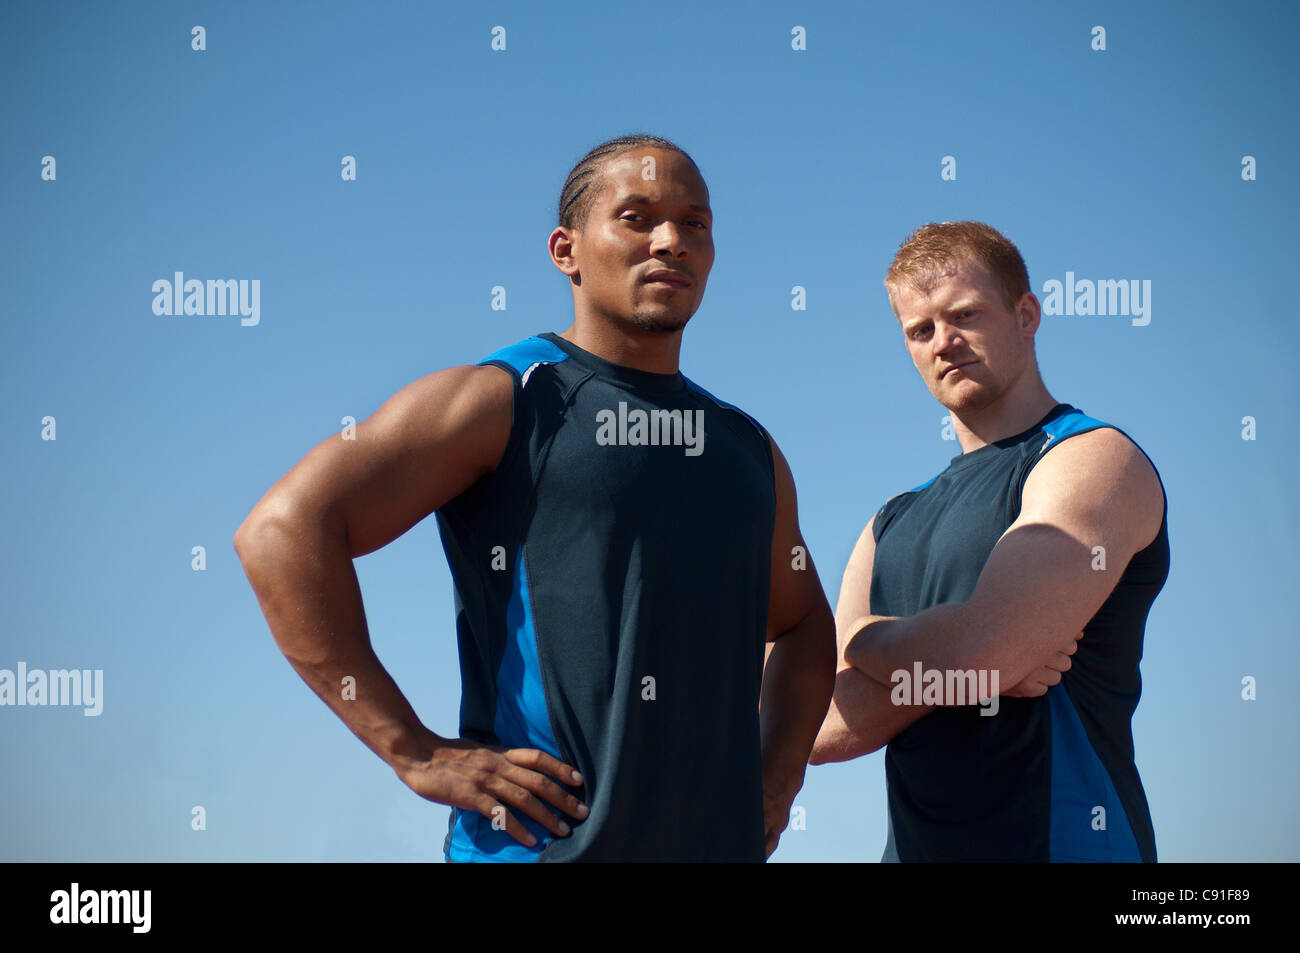 Athlete standing against blue sky - Stock Image